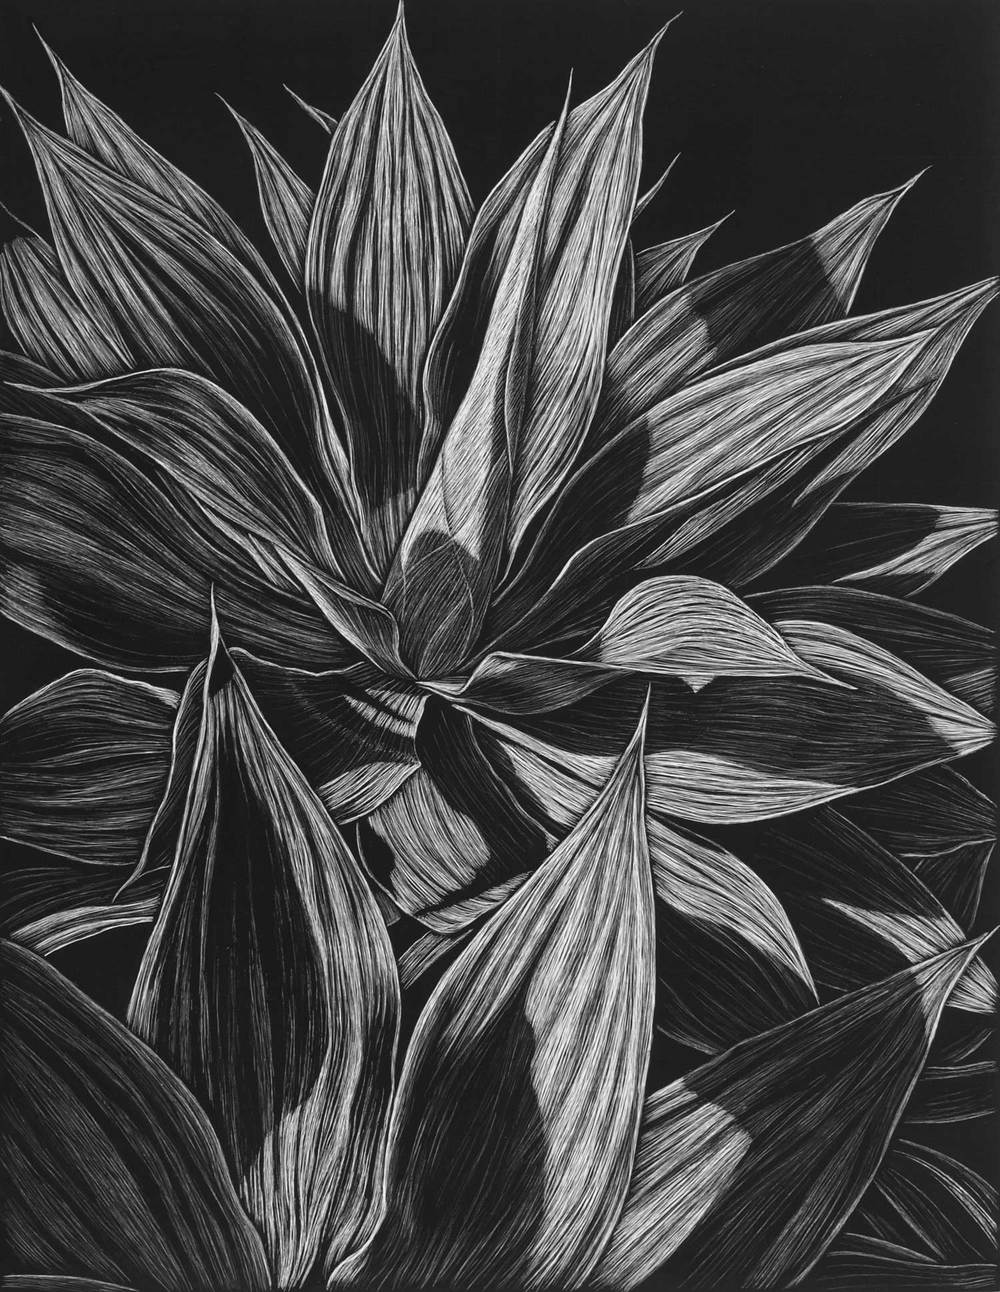 AGAVE, CLAREVILLE BEACH III 45.5 X 35.5 CM    EDITION OF 50 PIGMENT ON COTTON RAG PAPER $800